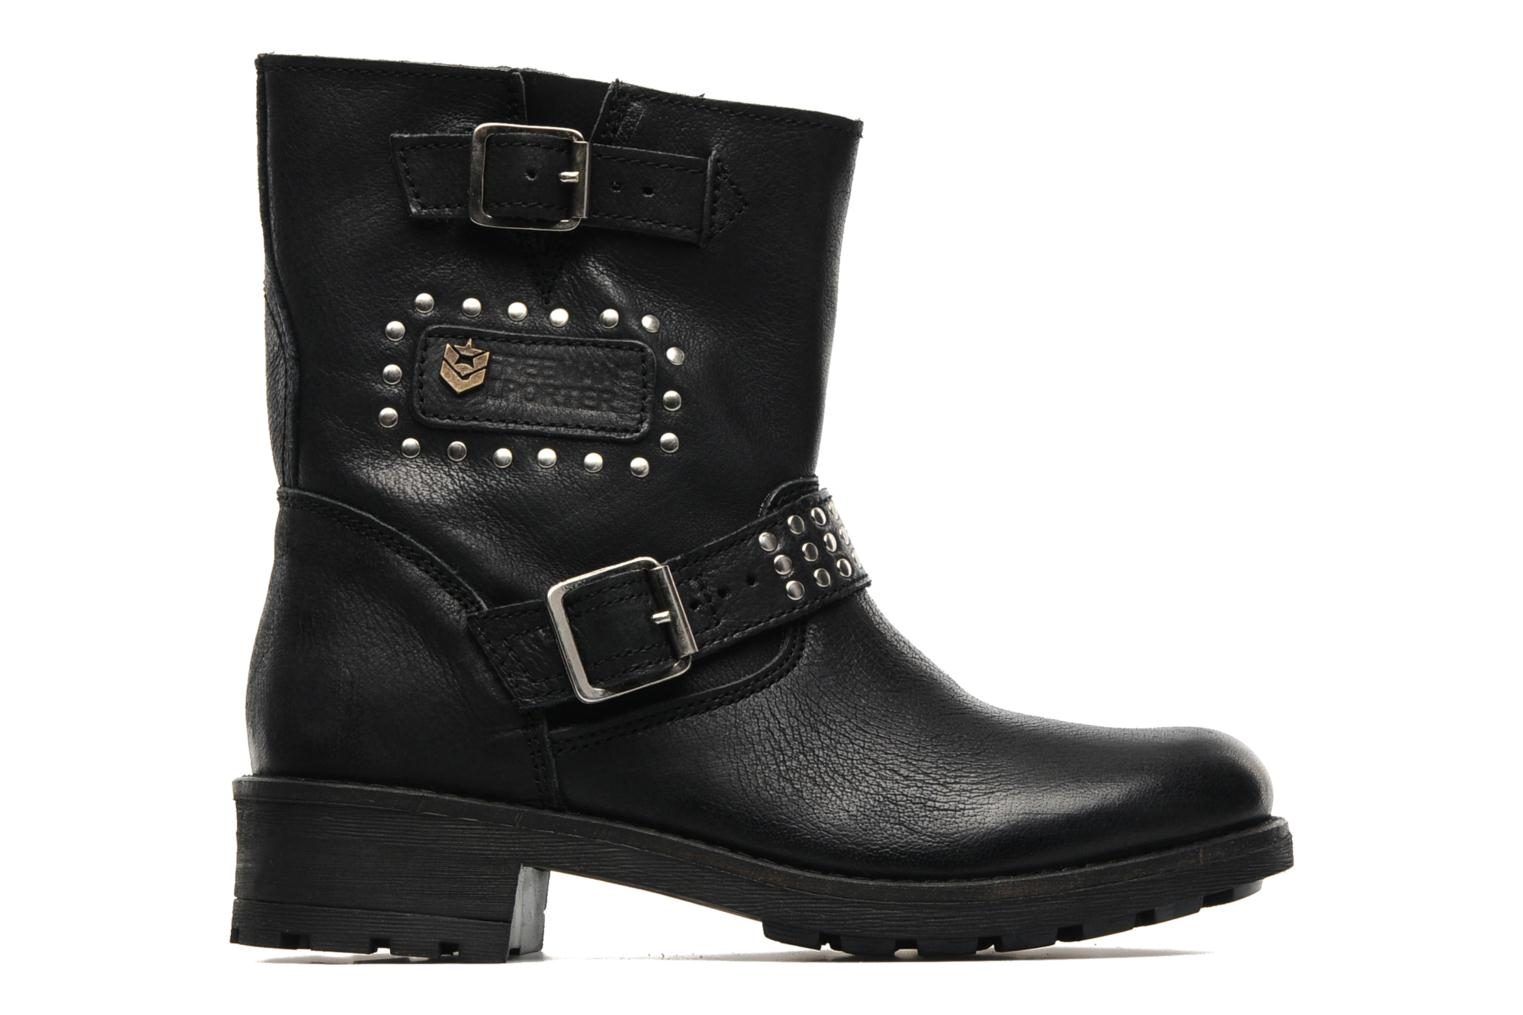 Freeman t porter felicia noir bottines et boots chez for Bottines freeman t porter